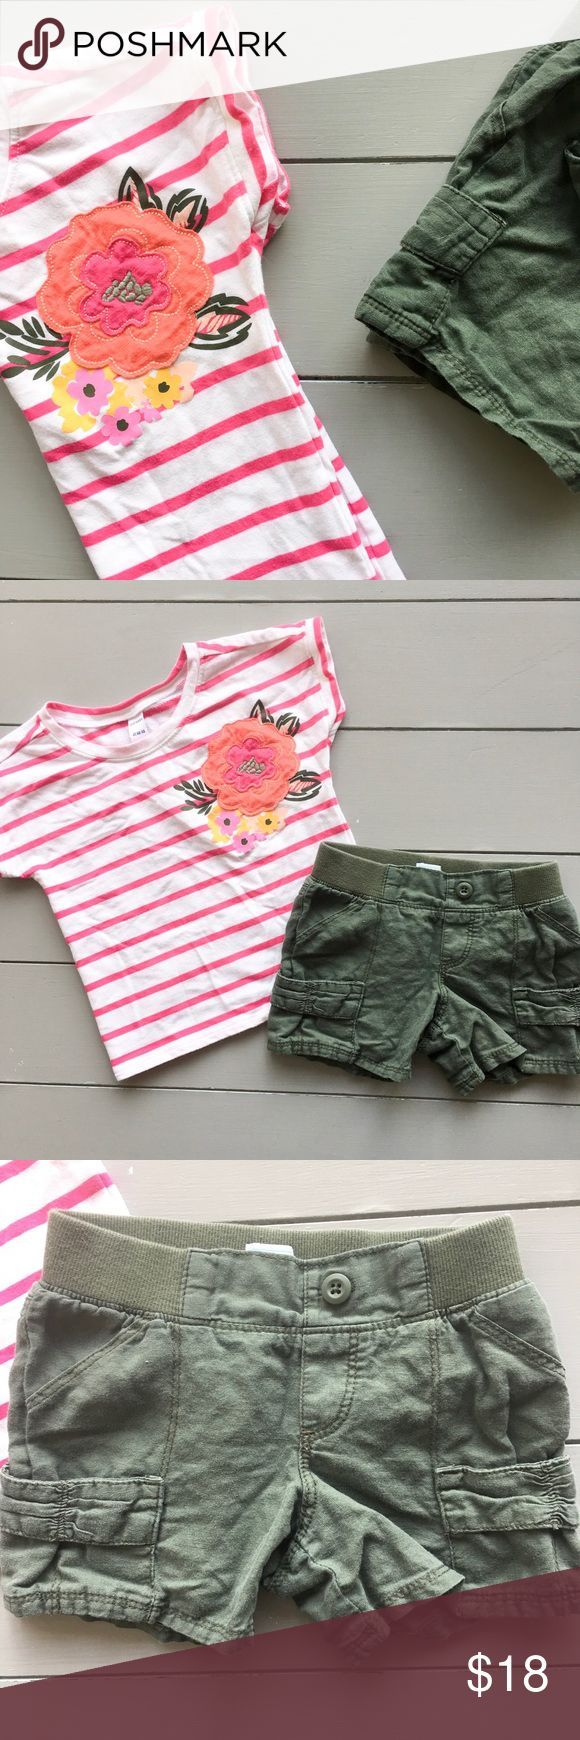 Selling this Old Navy Spring outfit on Poshmark! My username is: emmaedenco. #shopmycloset #poshmark #fashion #shopping #style #forsale #Old Navy #Other